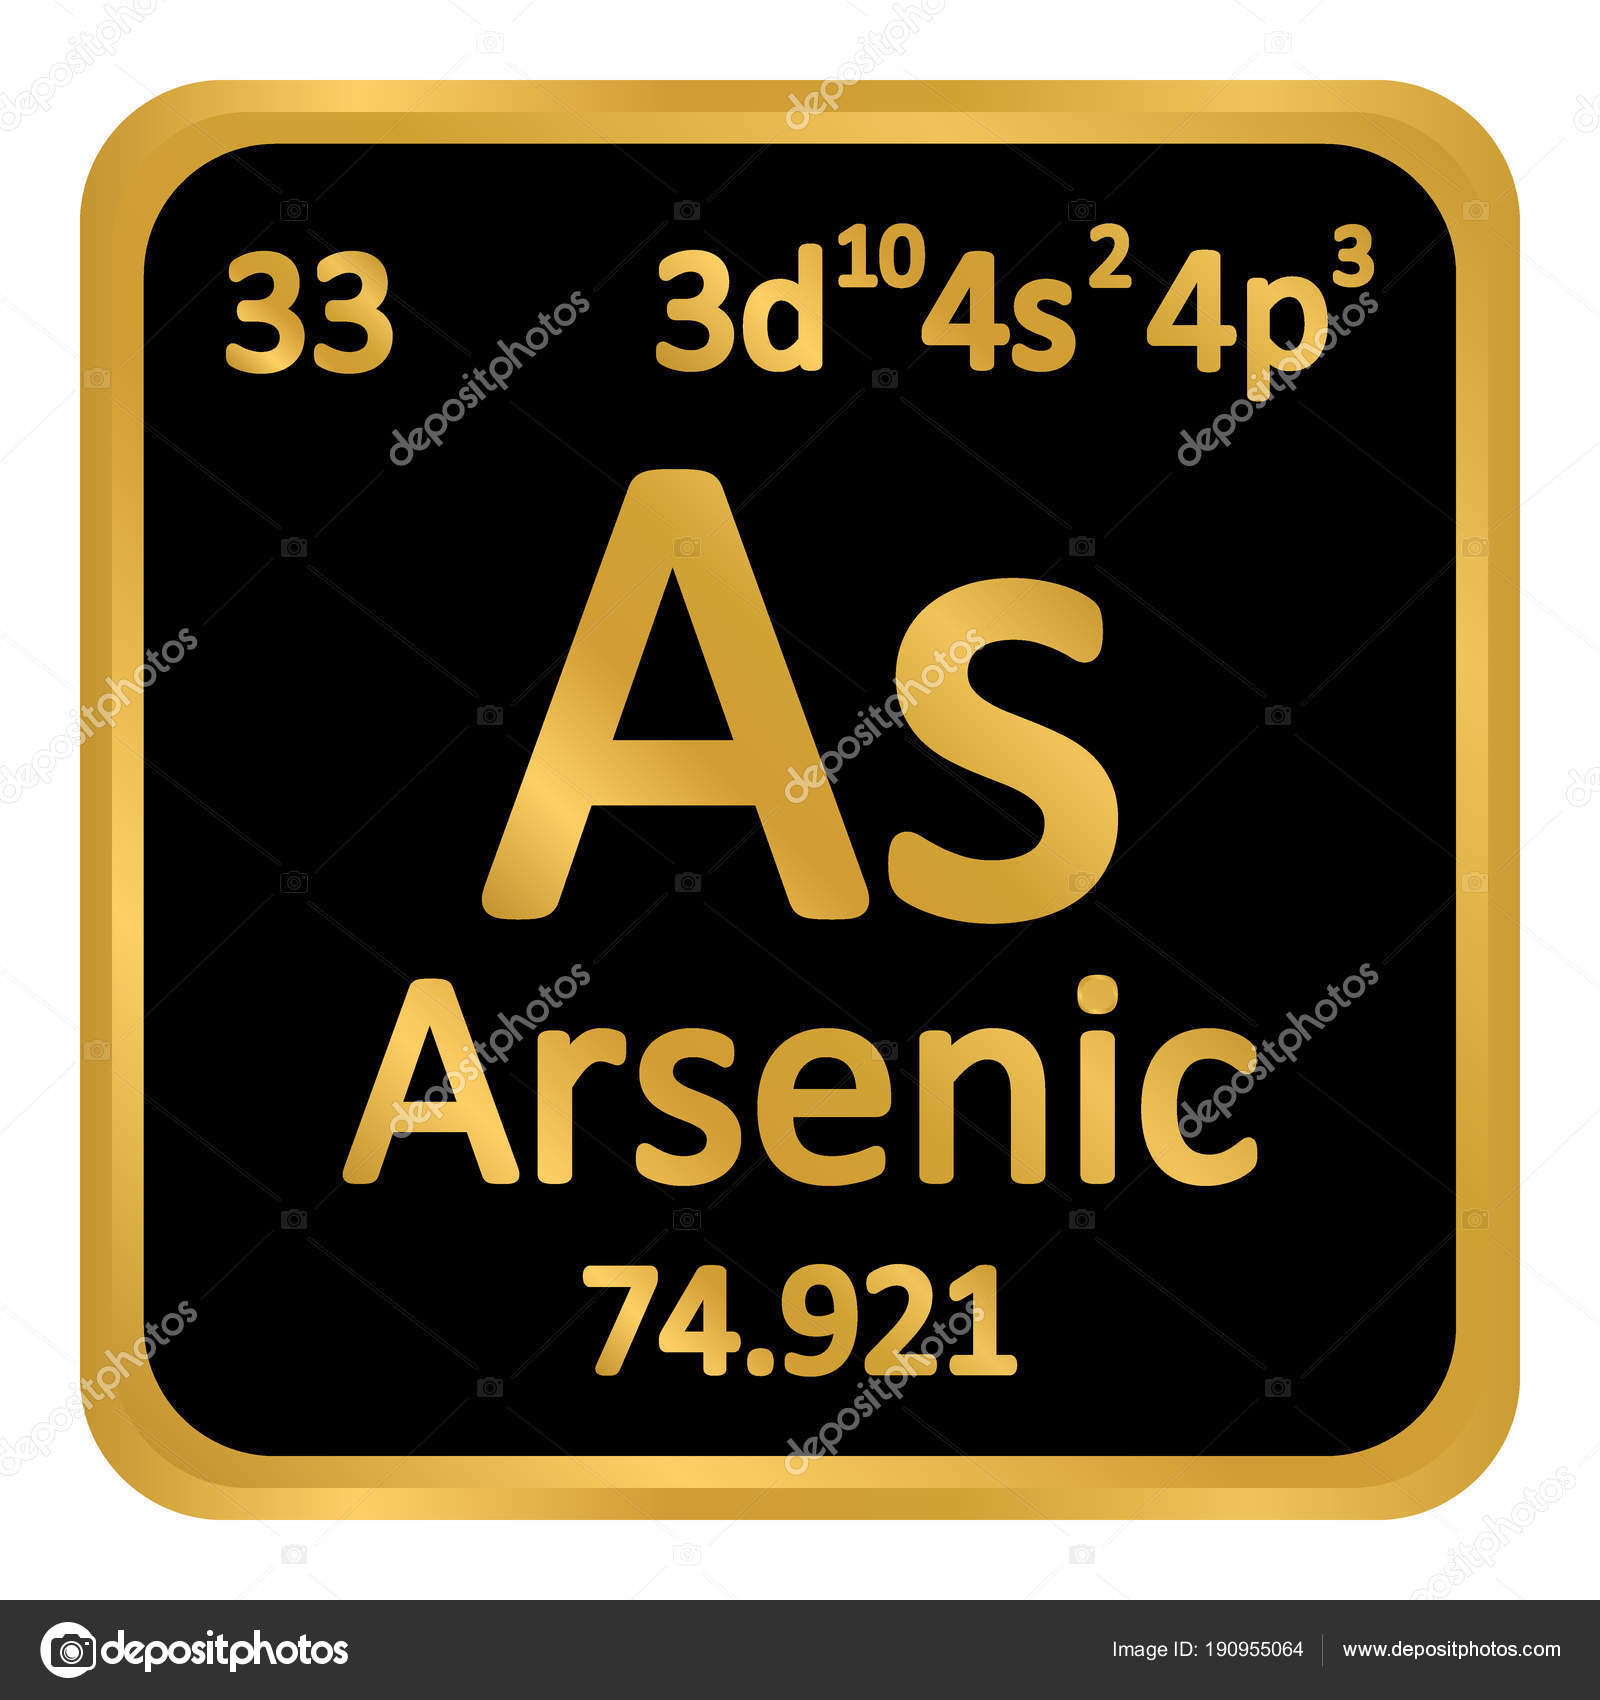 Periodic table element arsenic icon stock vector konstsem periodic table element arsenic icon stock vector biocorpaavc Image collections